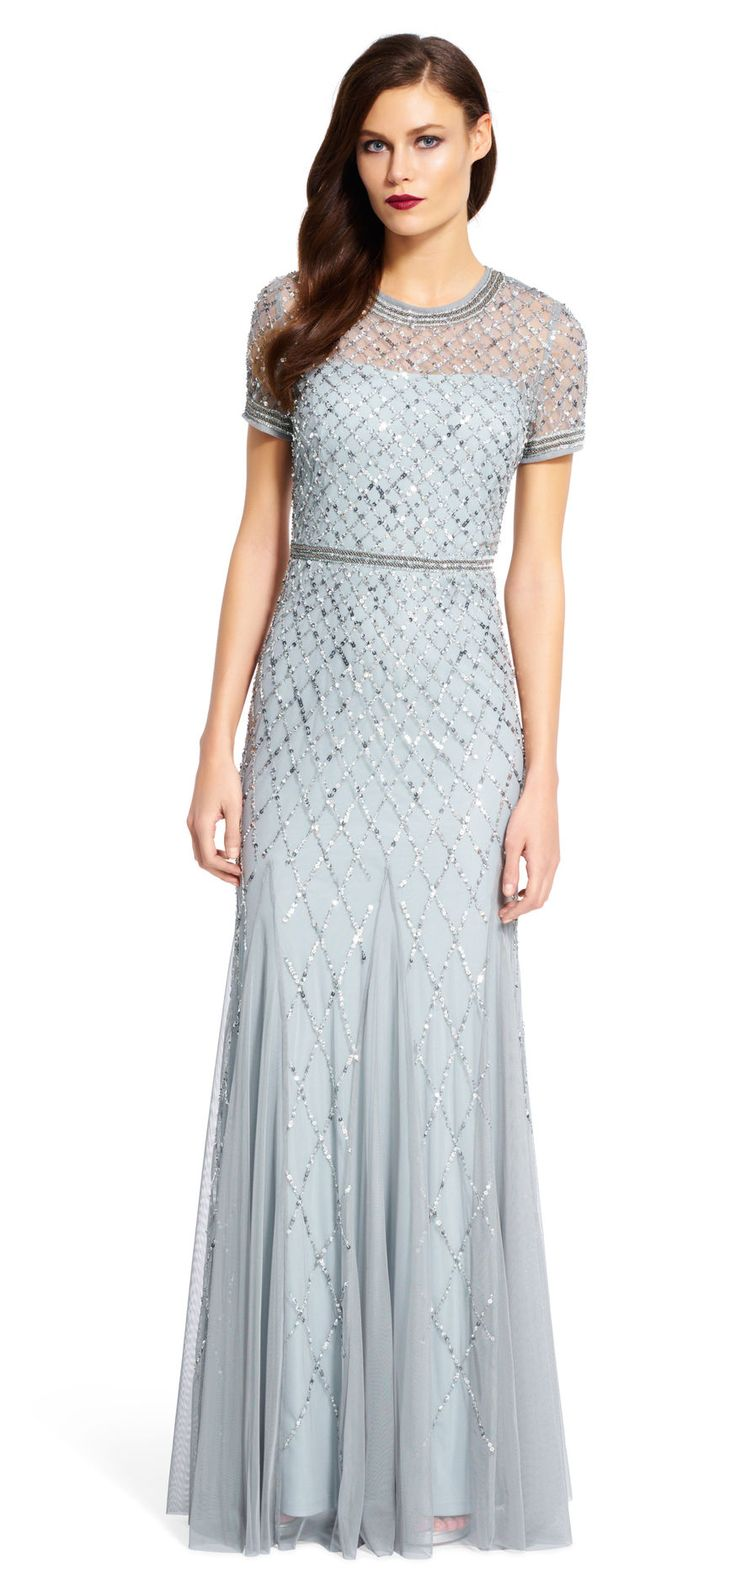 Papell cap sleeve beaded sequined gown dresses women macy s - Adrianna Papell Cap Sleeve Beaded Gown